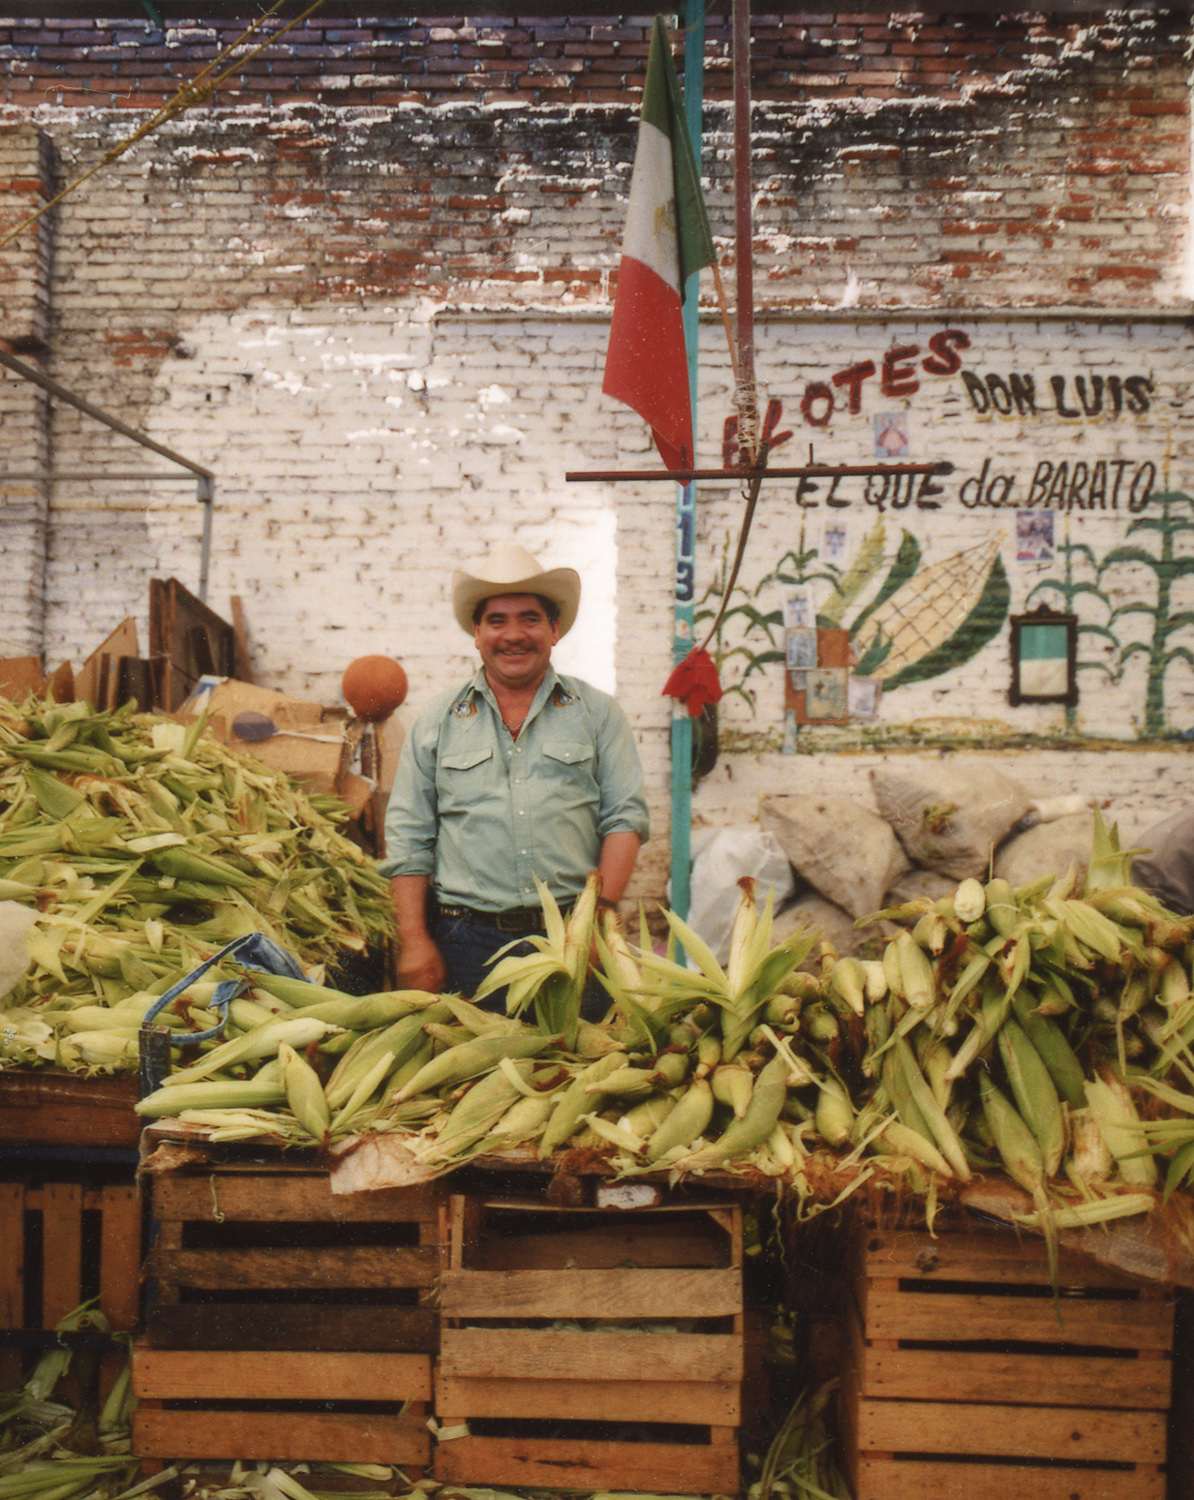 maize_mexico (1 of 1).jpg